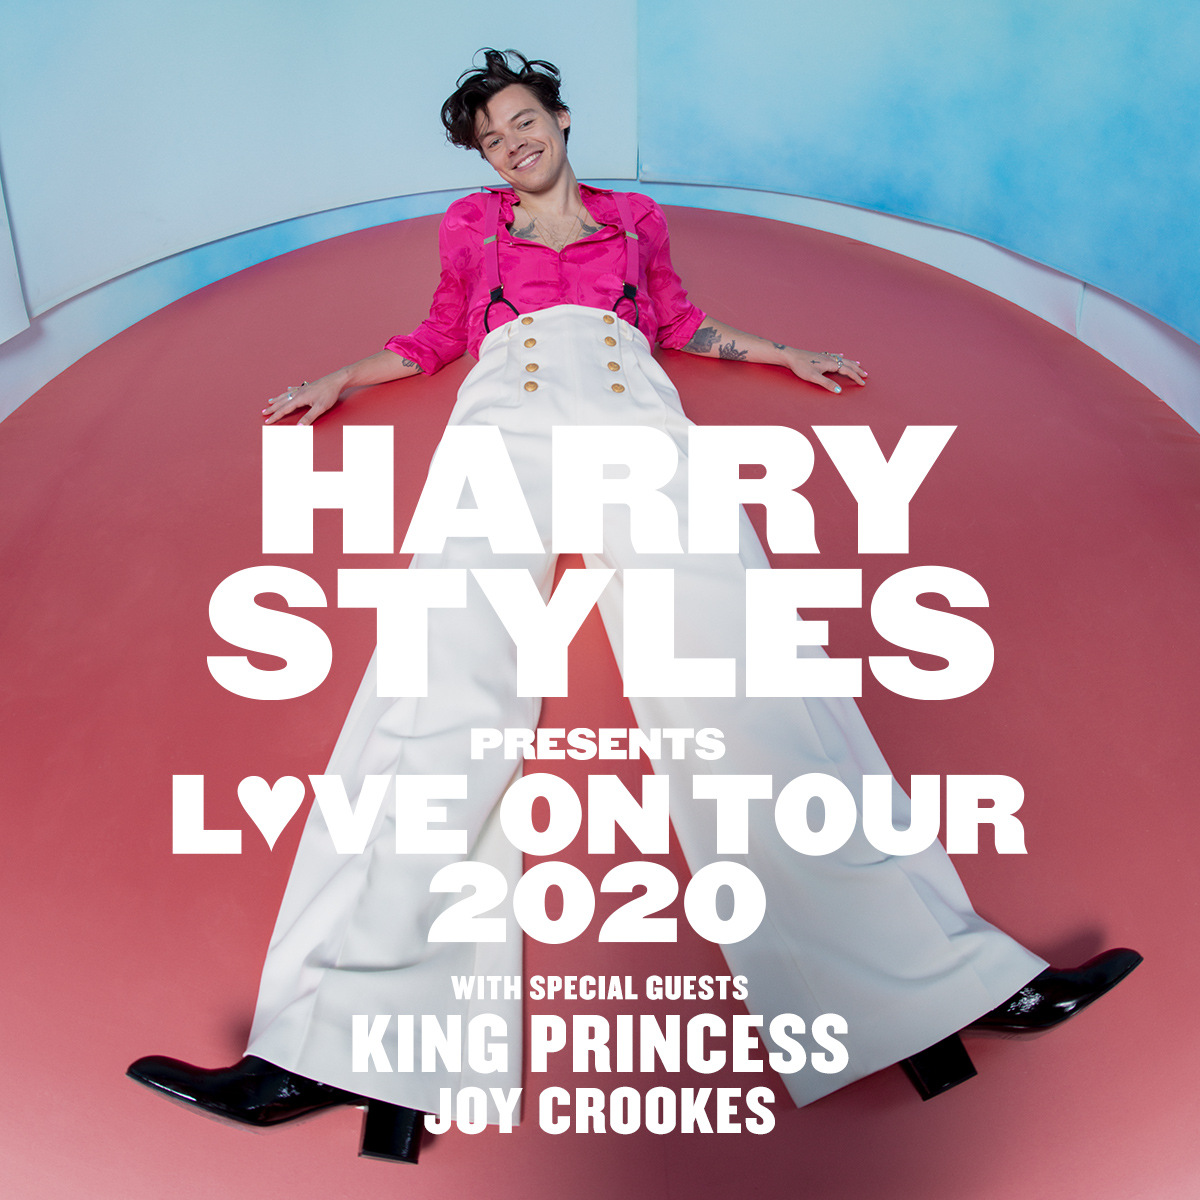 LOVE ON TOUR 2020.  Additional UK Support from @joycrookes (April 19, 22, 25 & 26) and @SWIM_DEEP (April 23).